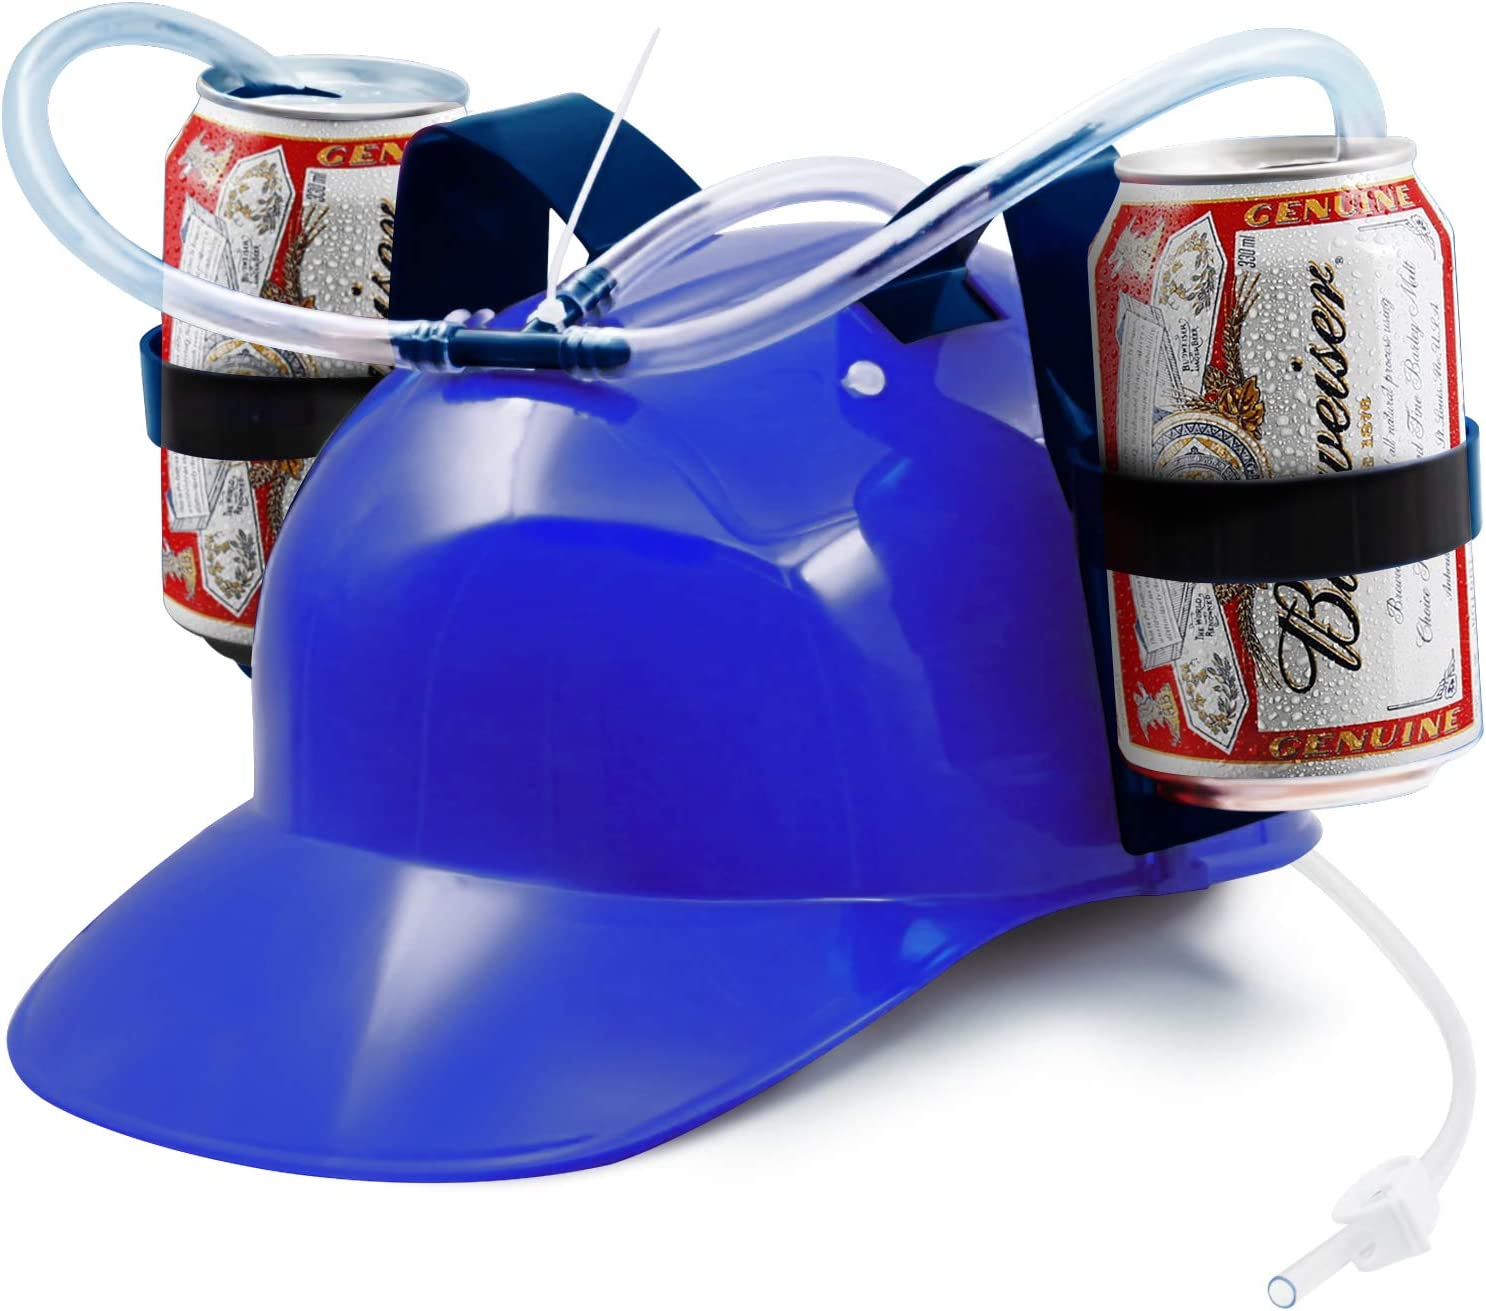 Novelty Place Guzzler Drinking Helmet - Adjustable Can Holder Cap Drinker Favor Hat - Straw for Beer Soda - Party Fun Beverage Gadgets(Blue)